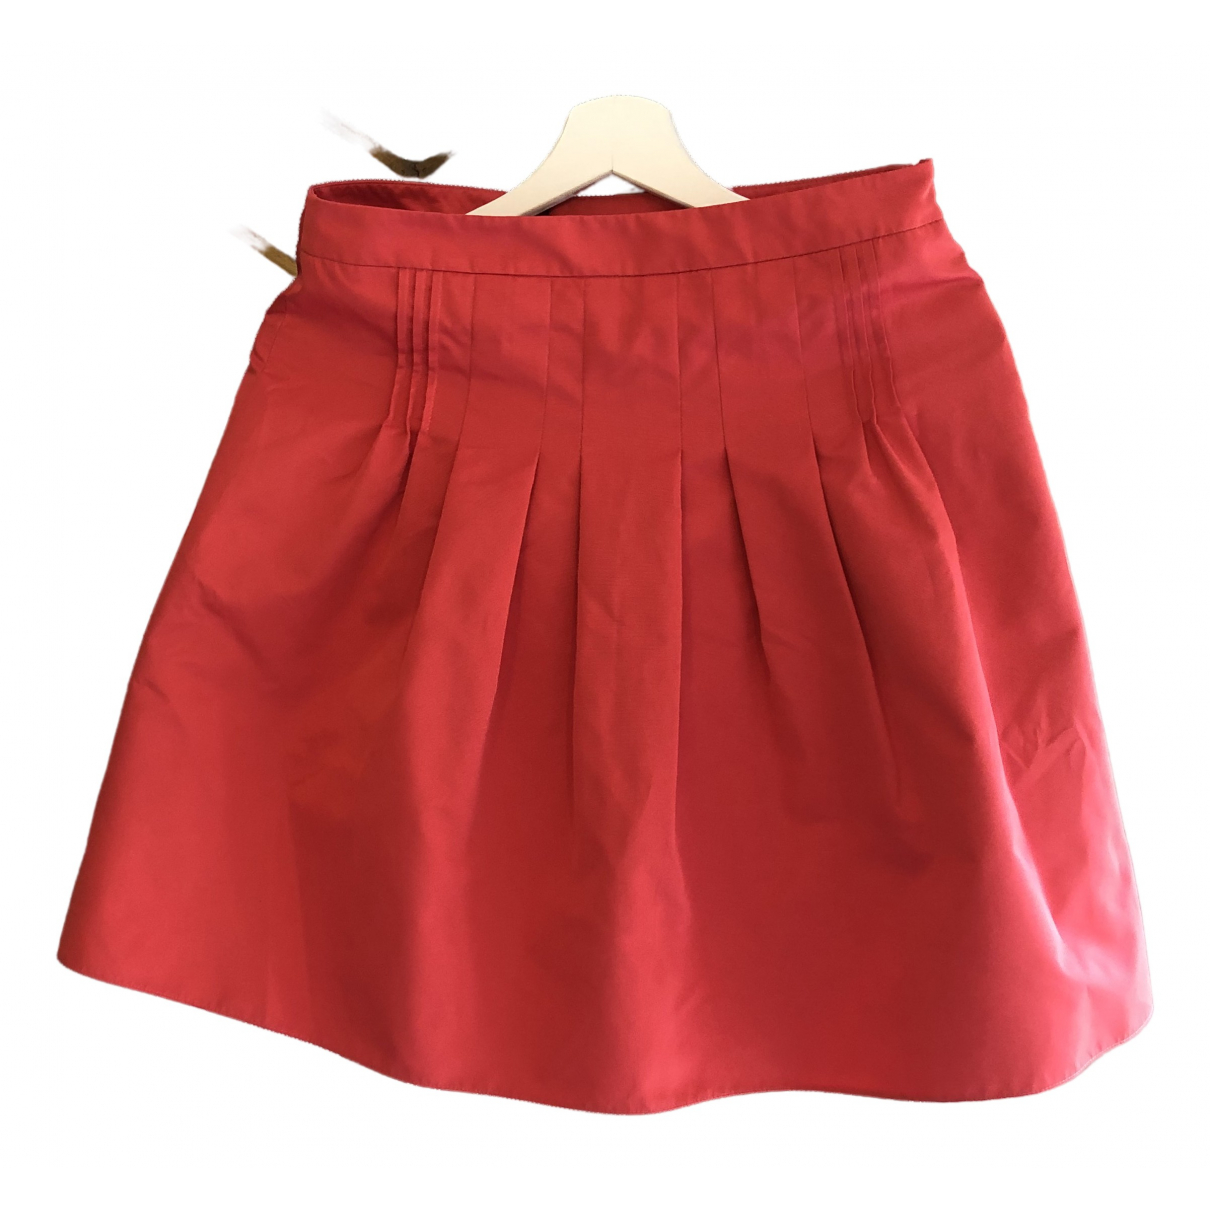 Blumarine N skirt for Women 42 IT